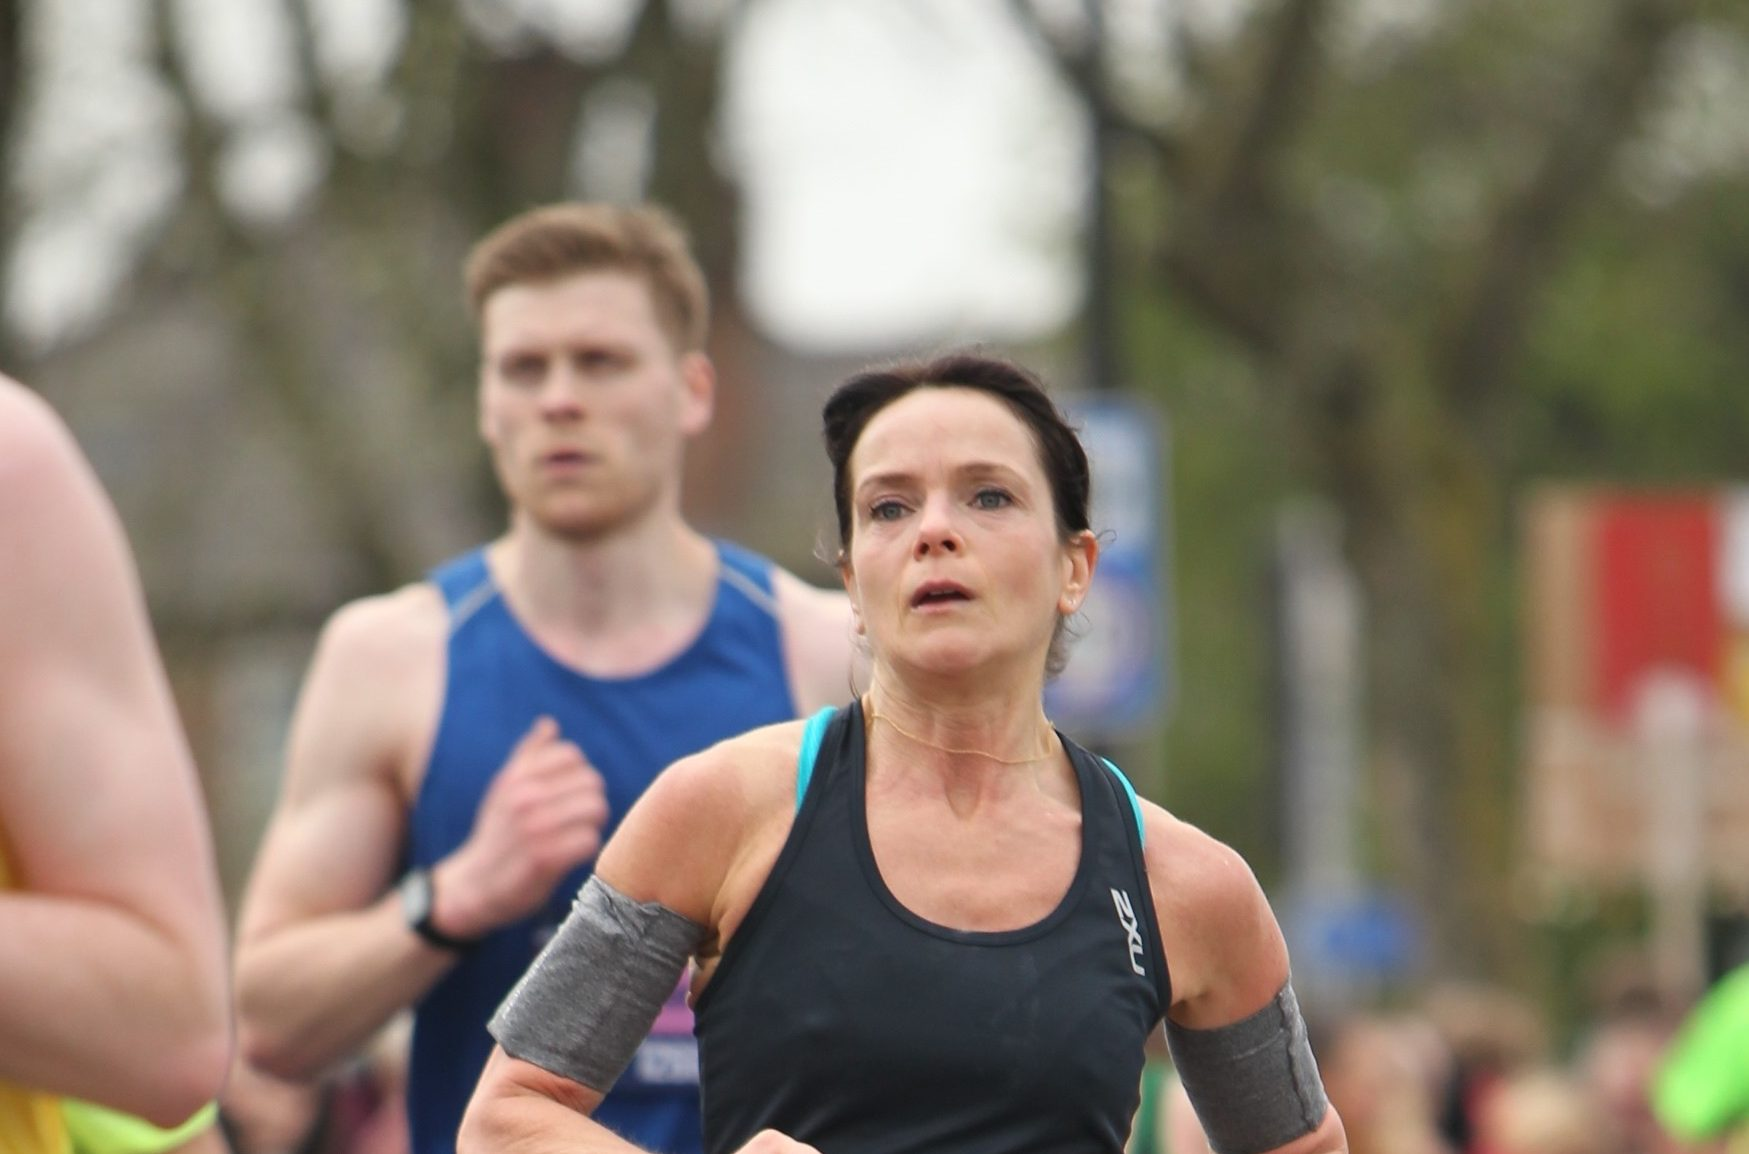 Joanna aims to run for Cat Protection